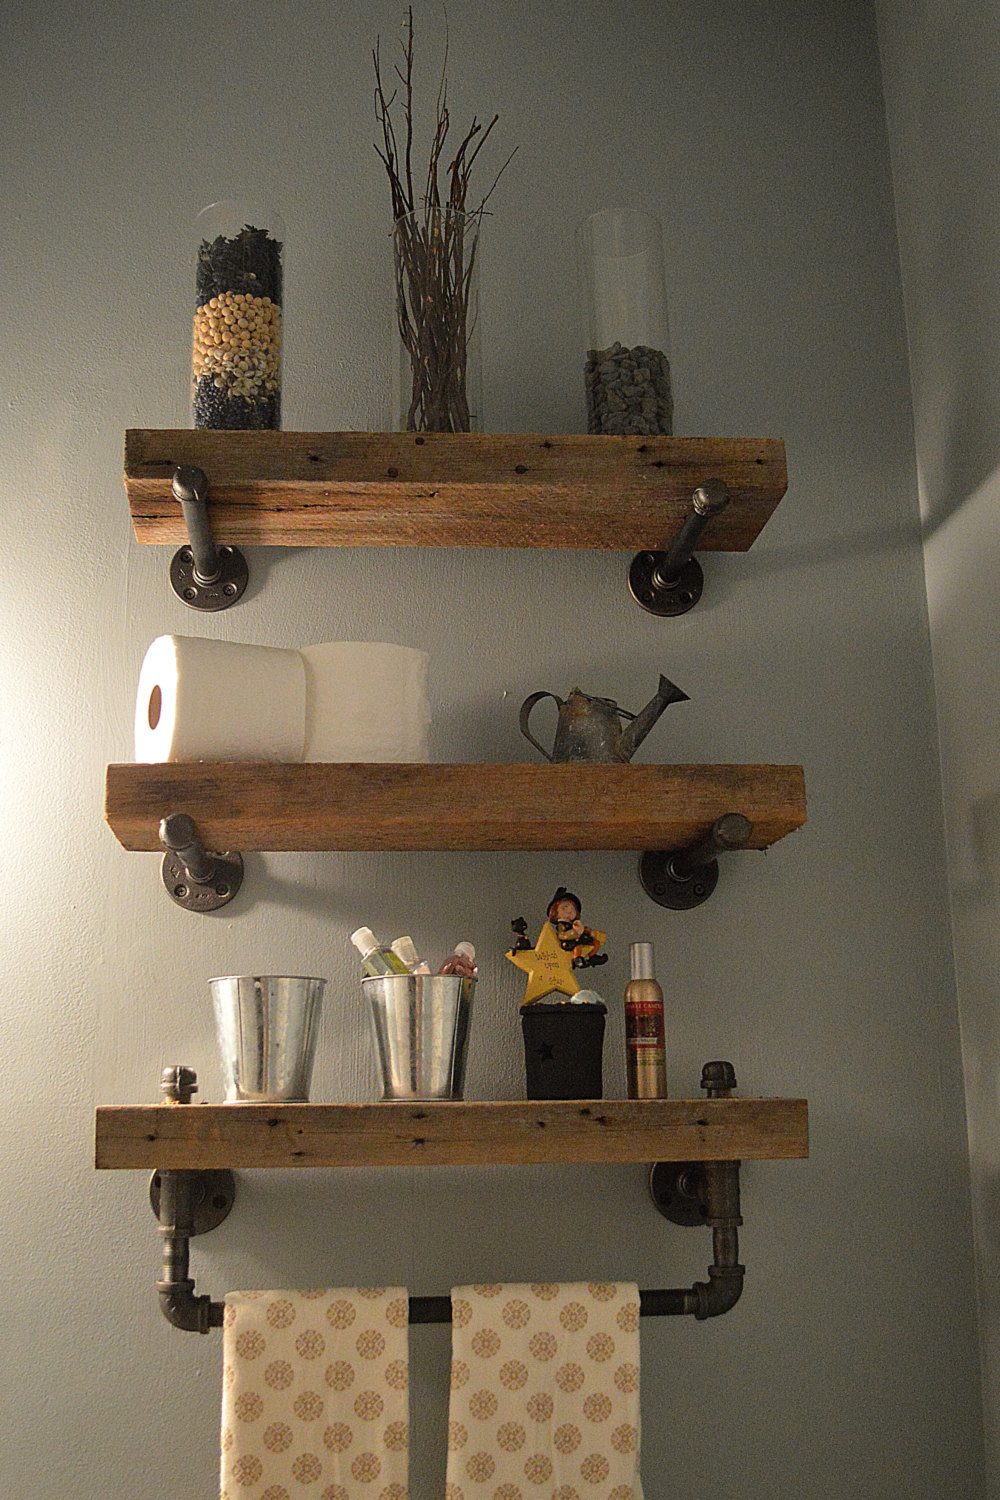 Gorgeous Heavy Plank Shelves Decor Ideas Industrial Hardware Rustic Bathroom Design 2018 Rustic Bathroom Wall Shelf bathroom Rustic Bathroom Wall Shelves